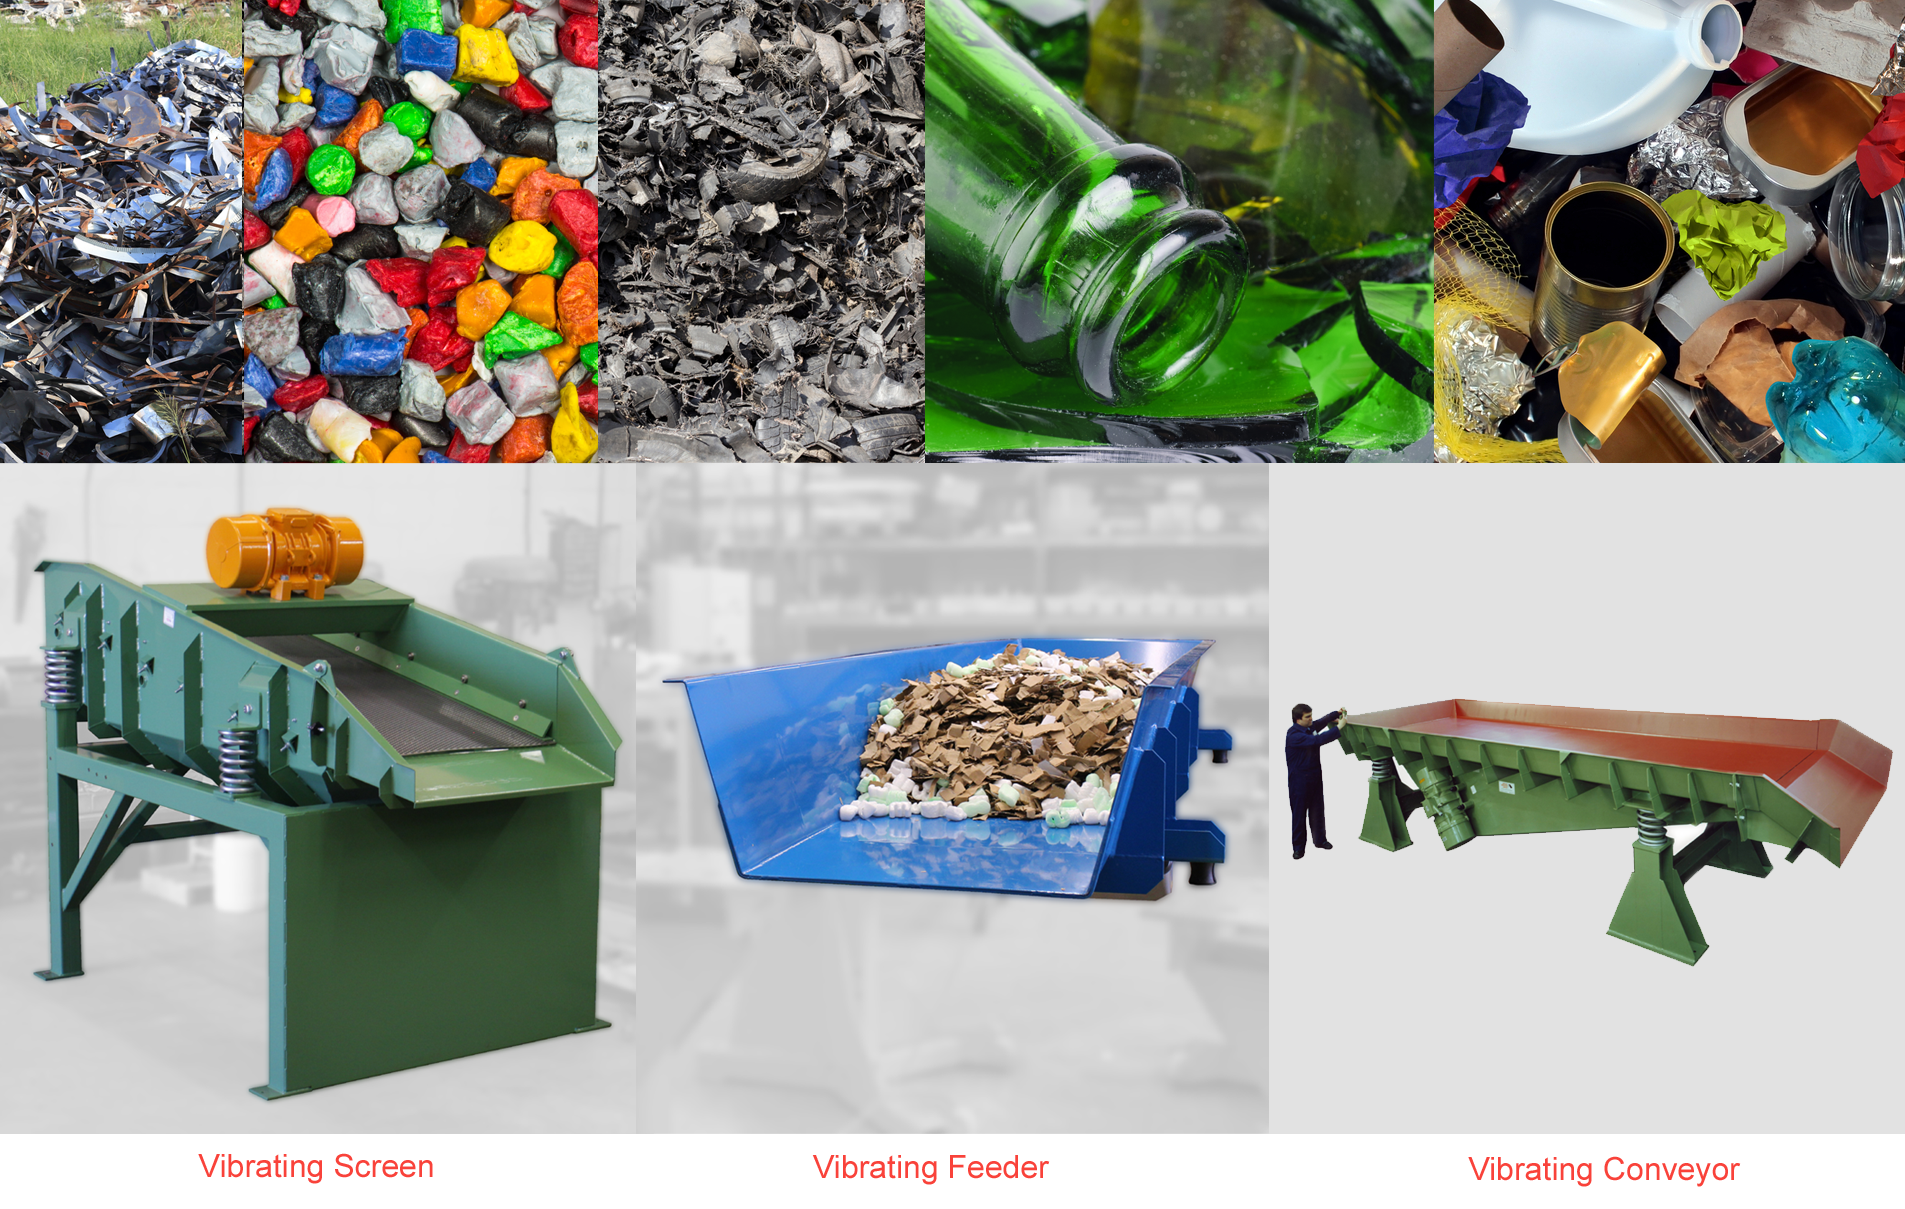 Handling recycled materials - plastics, glass, metals